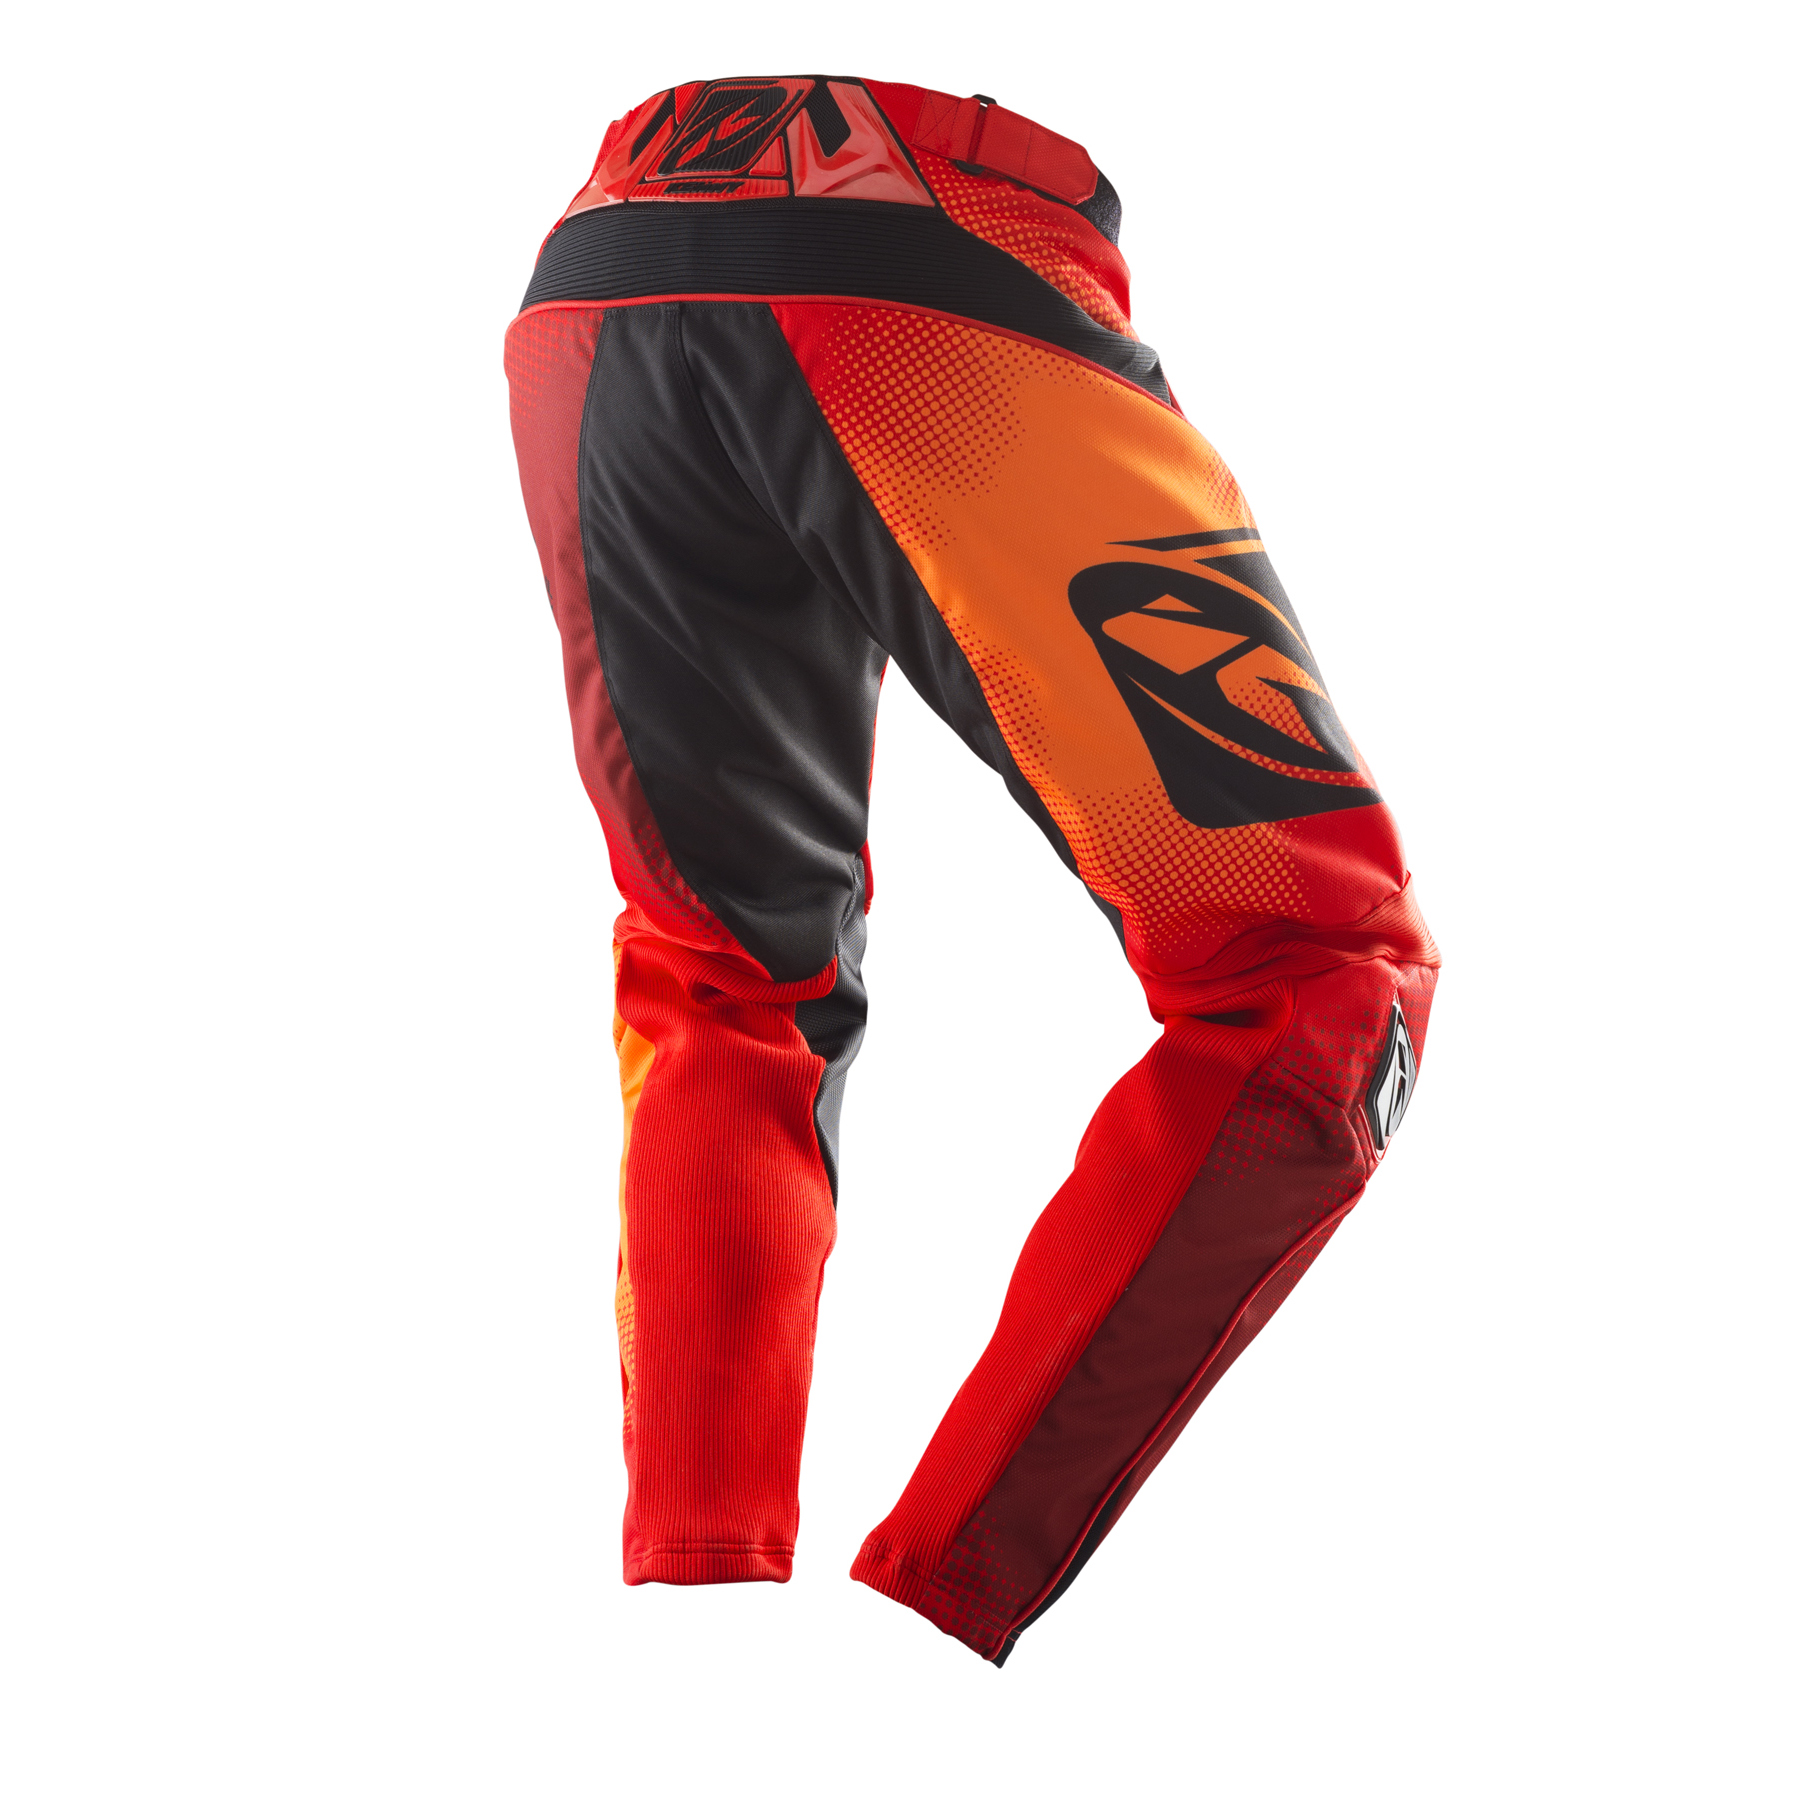 191-6102011-85 Kenny Racing 2019 Performance Paradise Red Motocross Pant Enduro Trikot Crosstrui Maillot Offroad